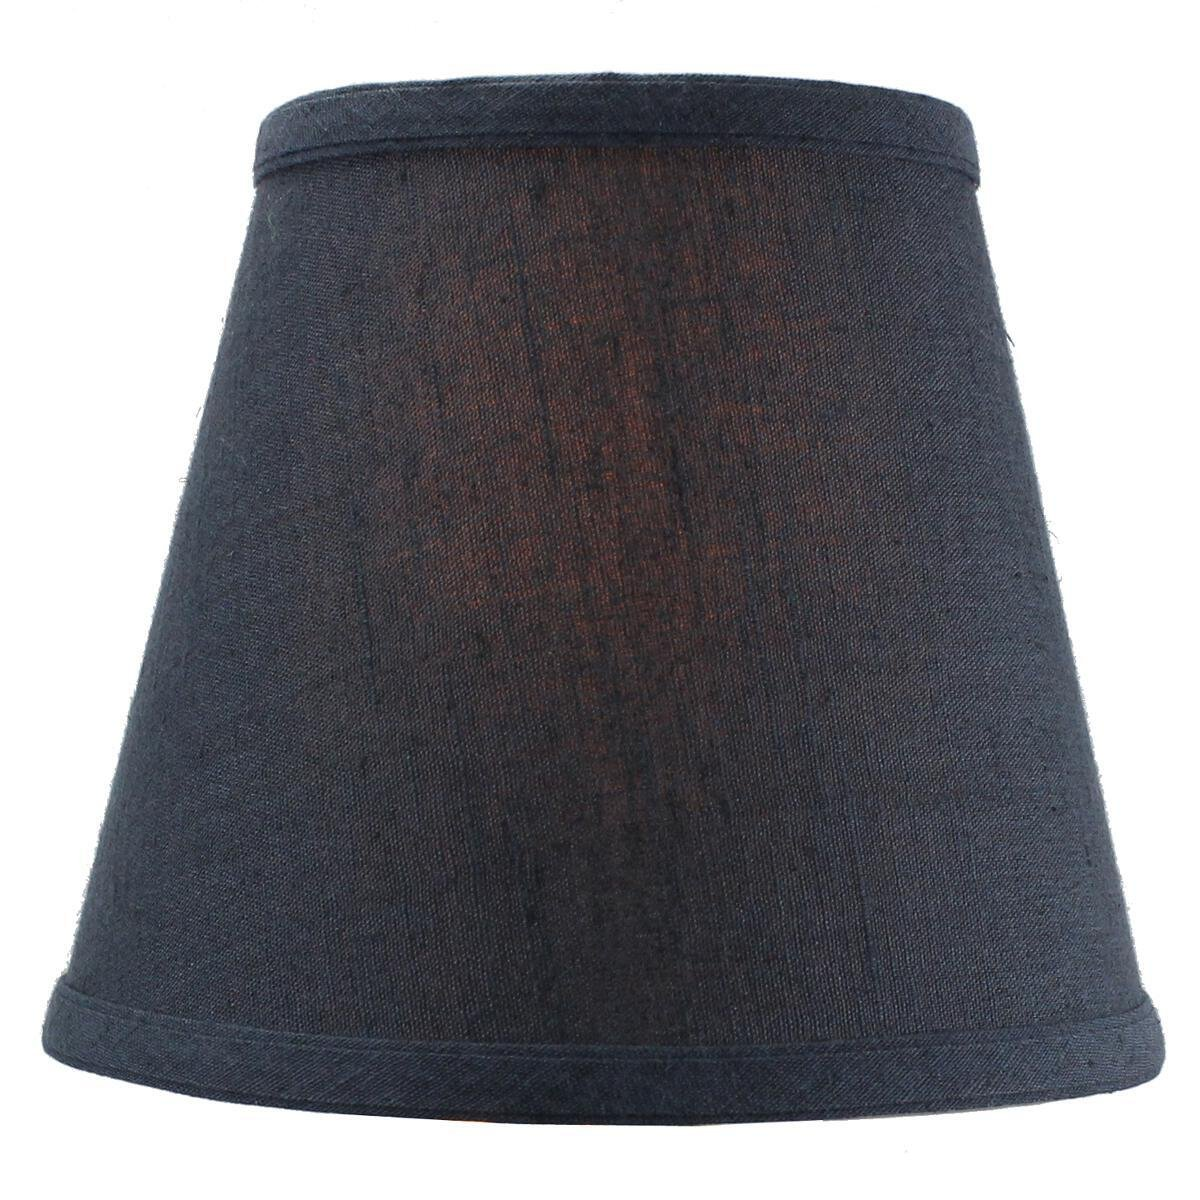 5x8x7 Textured Slate Blue Hard Back Lampshade Clip On Fitter by Home Concept - Perfect for Small Table Lamps, Desk Lamps, and Accent Lights -Small, Blue by HomeConcept (Image #6)